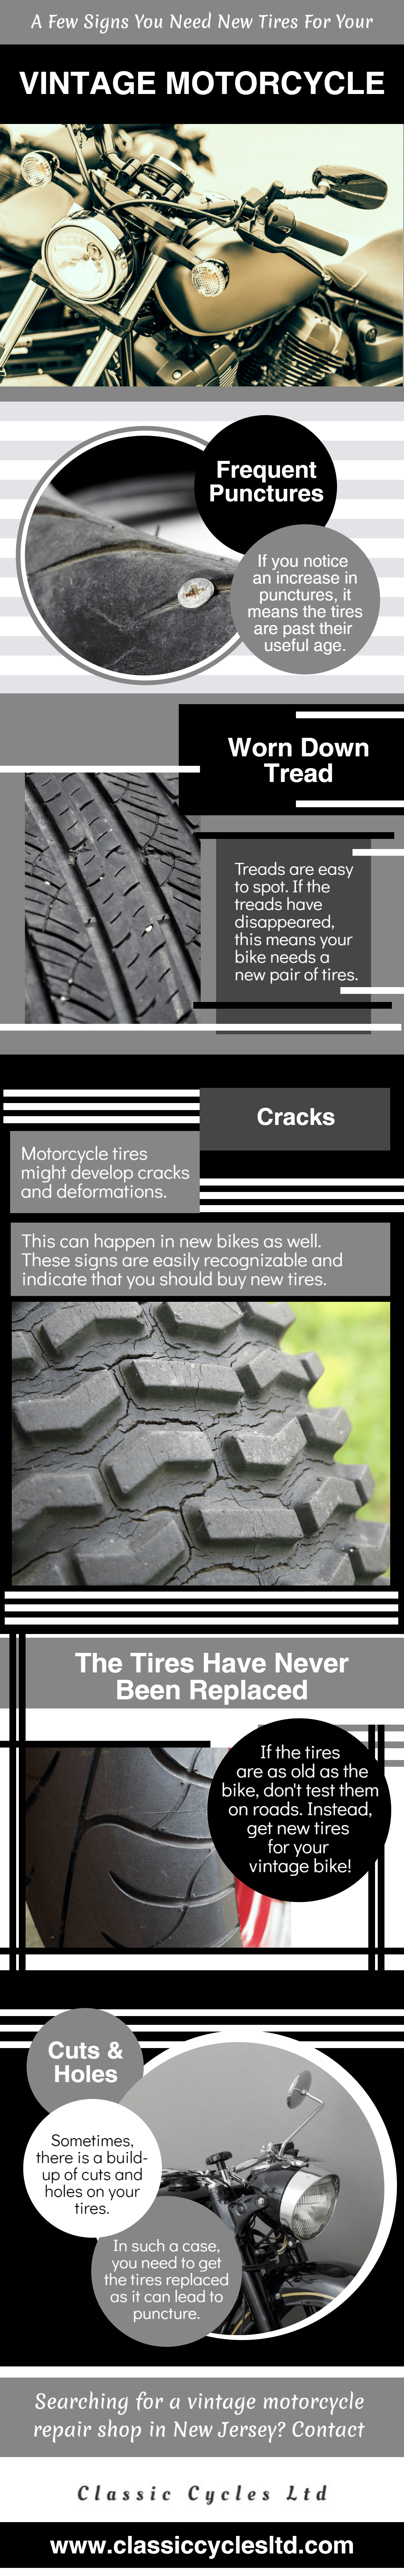 A Few Signs You Need New Tires For Your Vintage Motorcycle.png